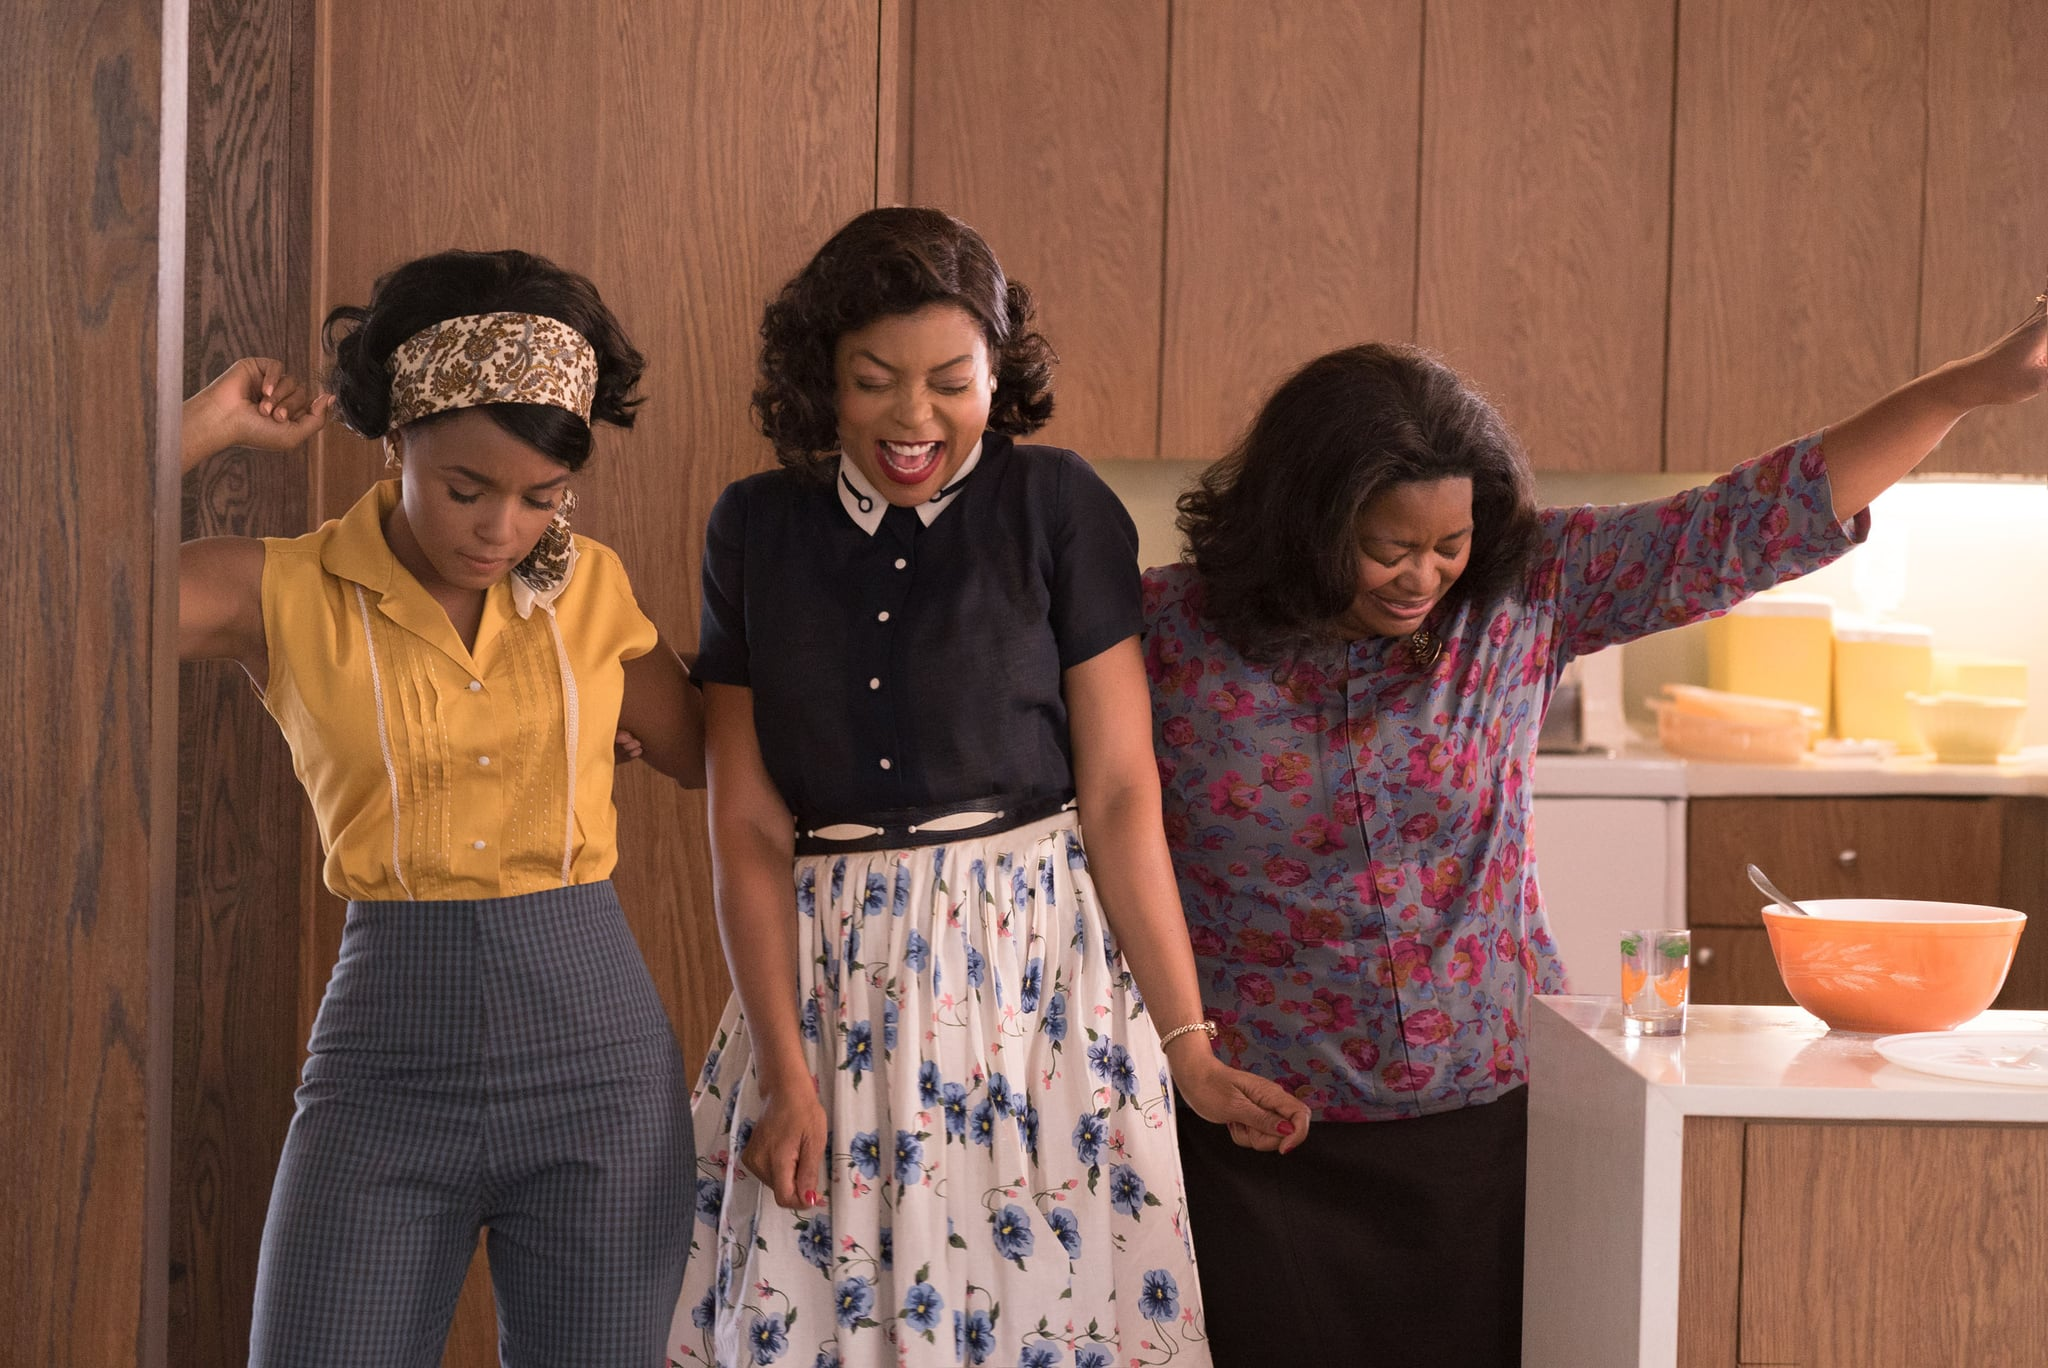 HIDDEN FIGURES, from left: Janelle Monae, Taraji P. Henson, Octavia Spencer, 2017. ph: Hopper Stone /TM and  copyright Fox 2000 Pictures.  All rights reserved./Courtesy Everett Collection